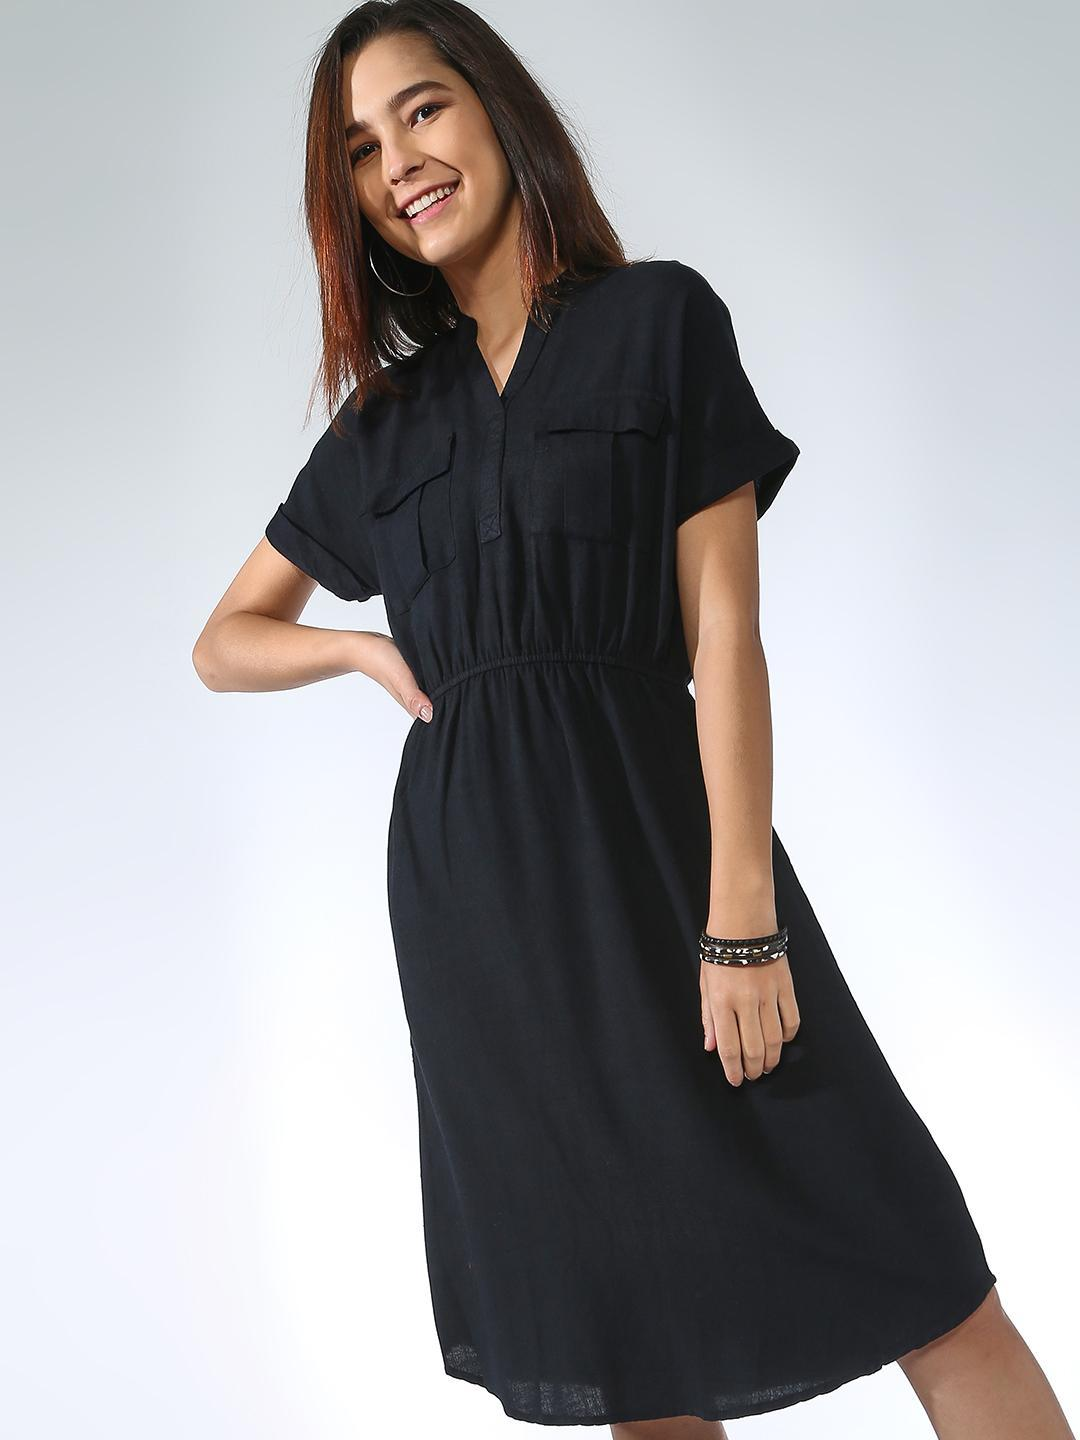 Oxolloxo Black Patch Pocket Dress 1